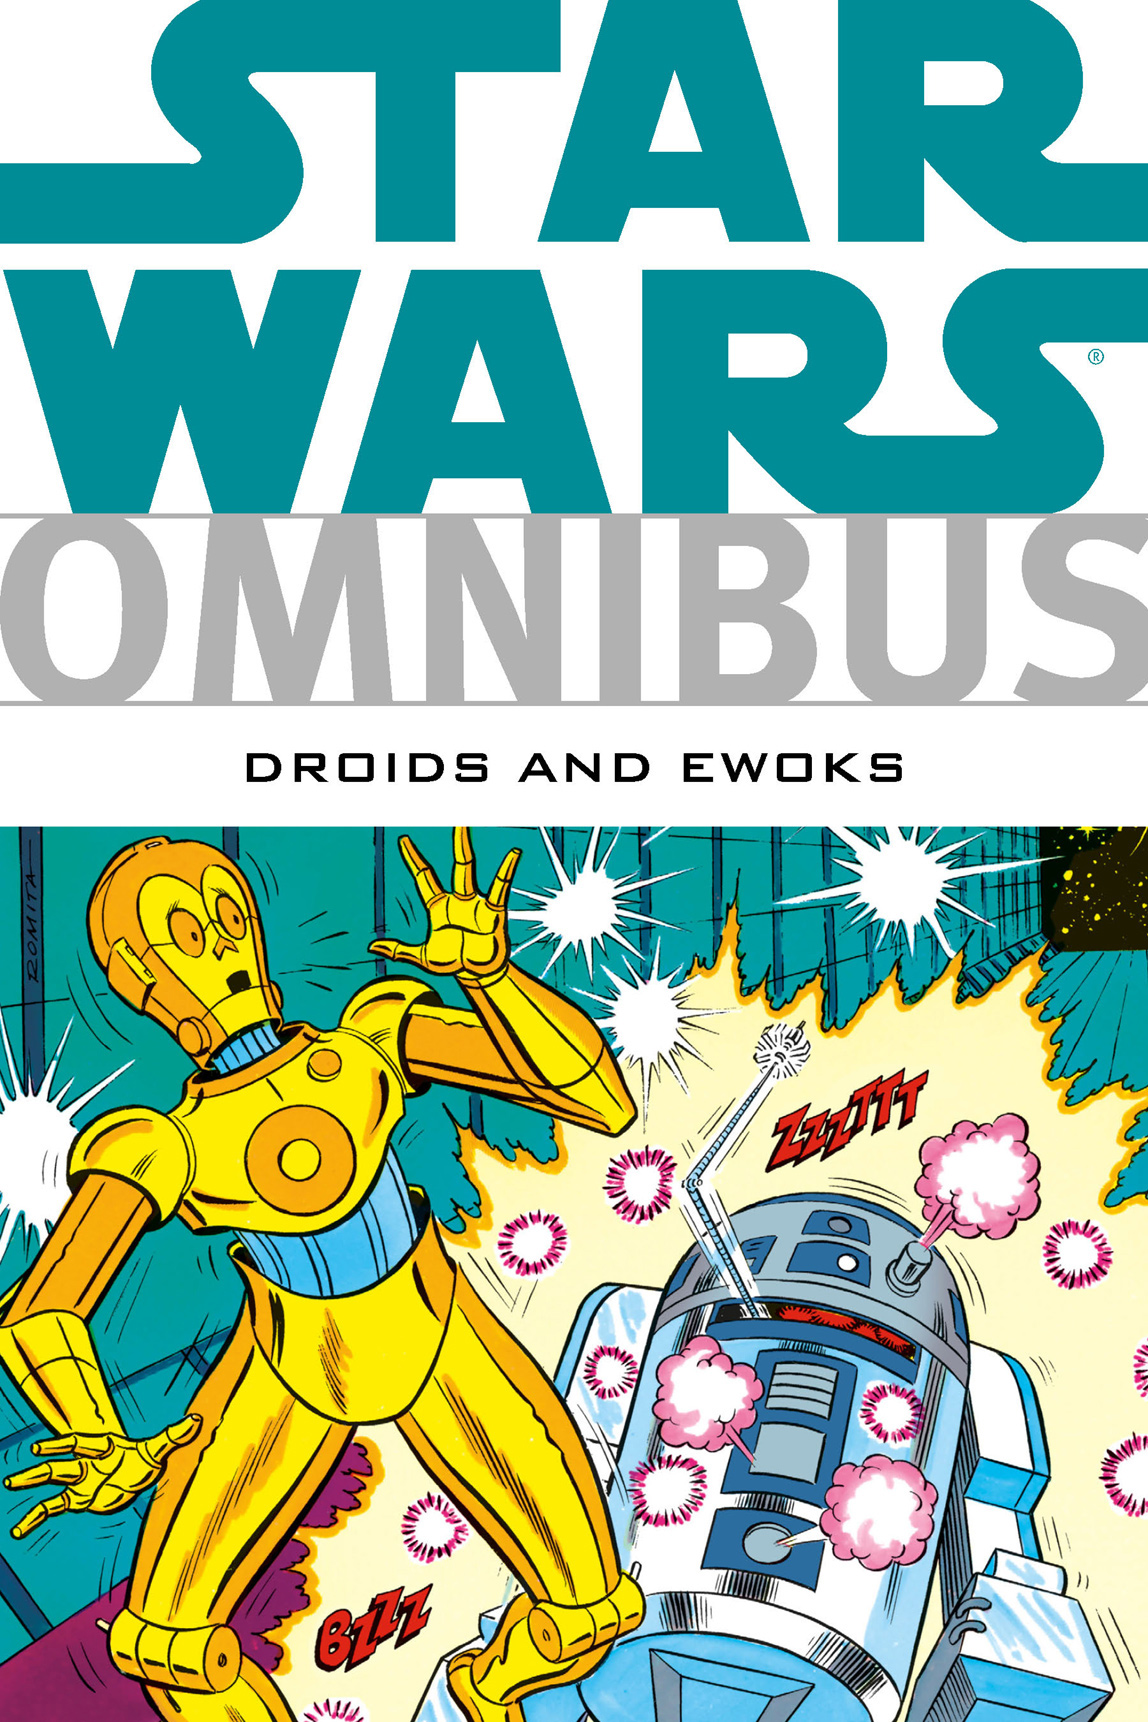 Star Wars Omnibus: Droids and Ewoks By: David Manak,George Caragonne,Warren Kremer